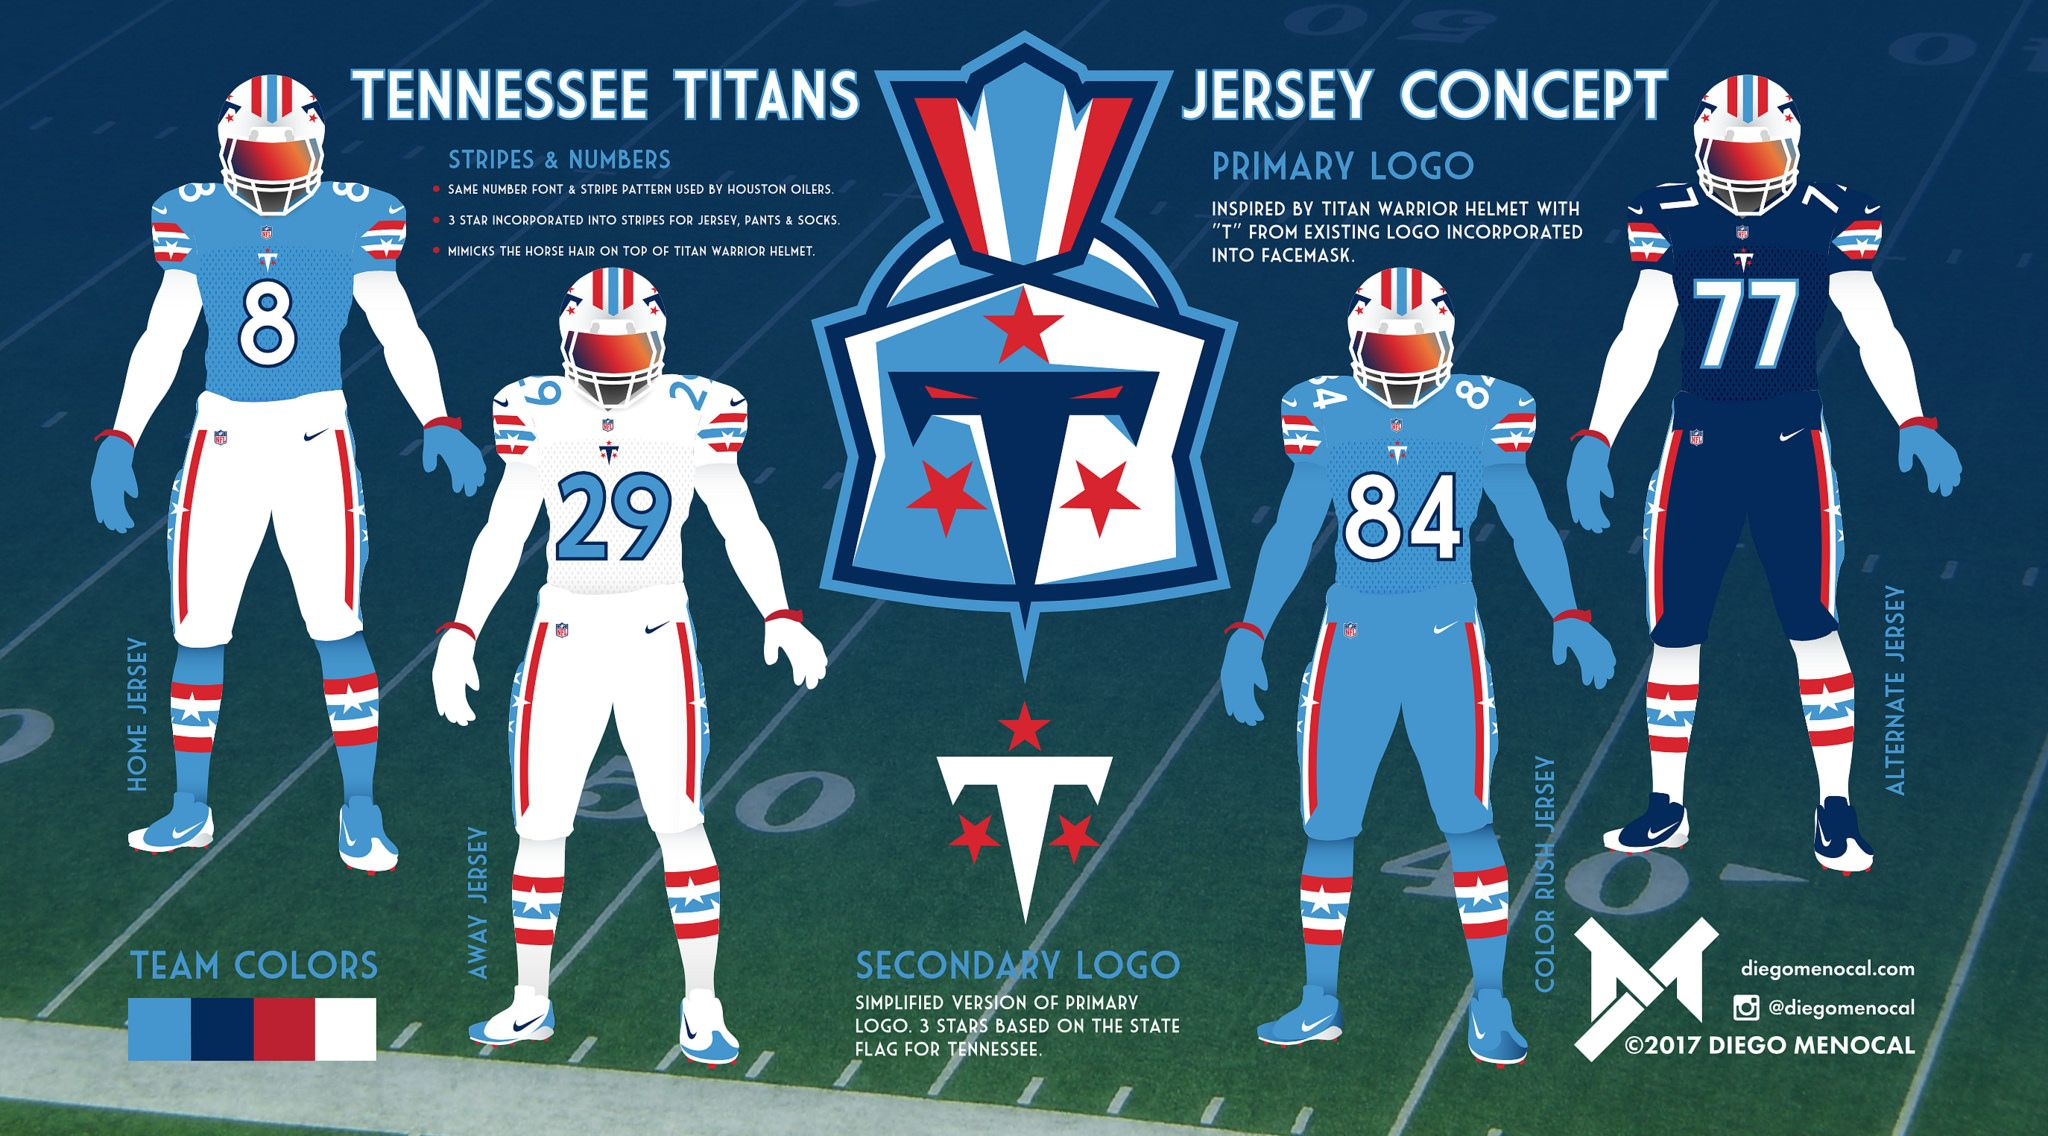 Pin by Brad Coulter on Titans Concepts